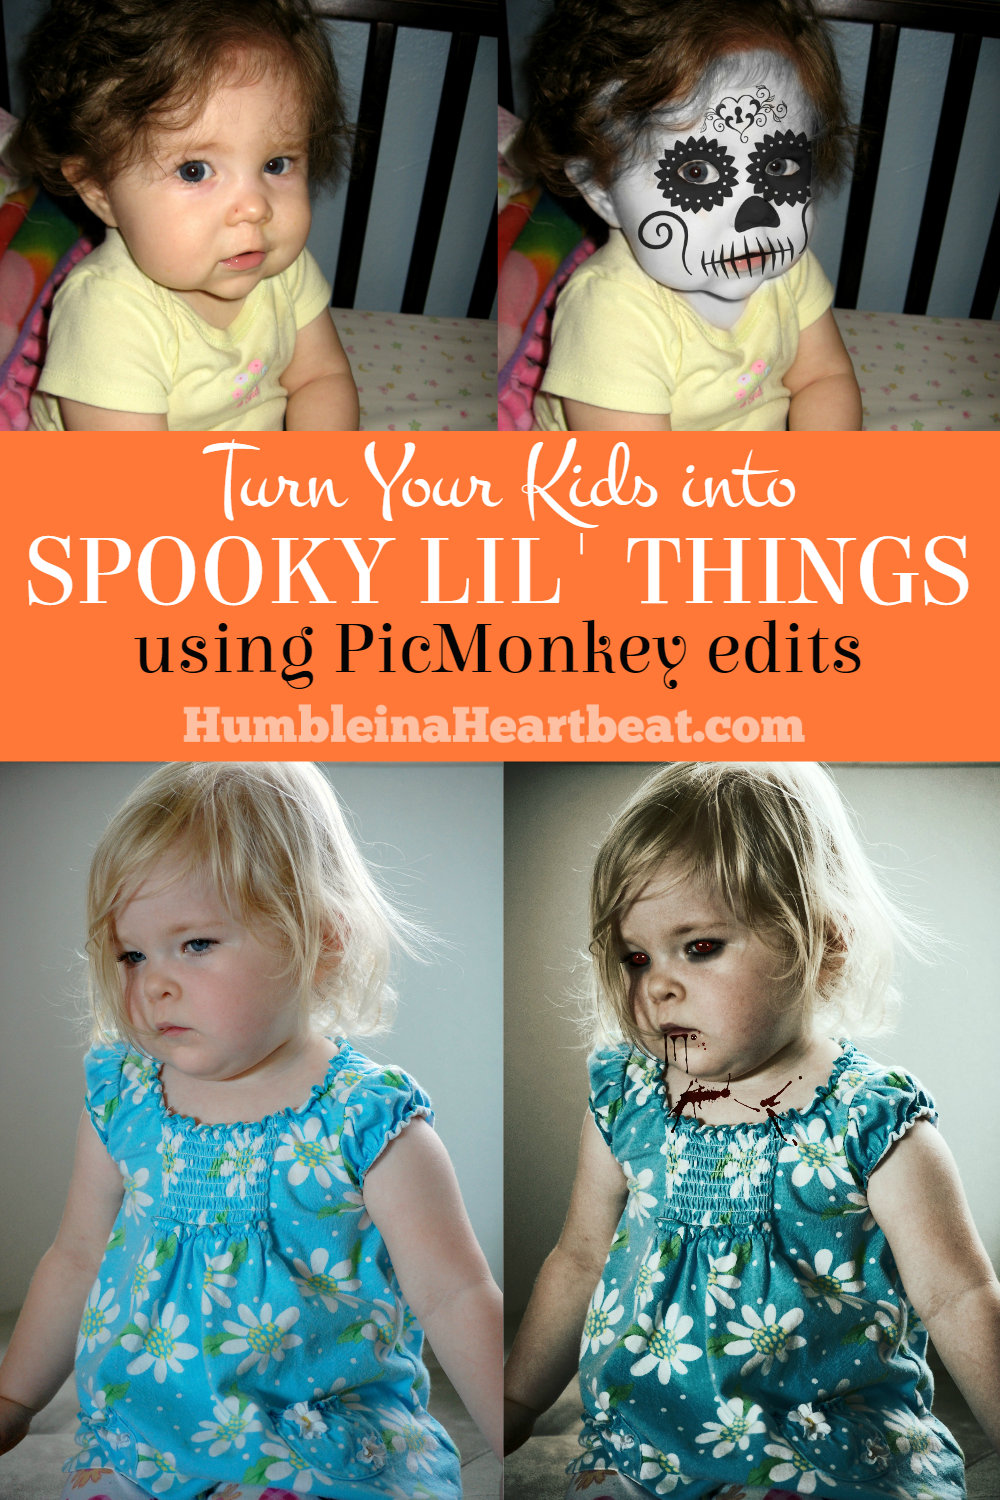 You don't have to paint your child's face or dress them in costume for Halloween. All you need is PicMonkey and you can turn them into the creepiest lil' thing around!